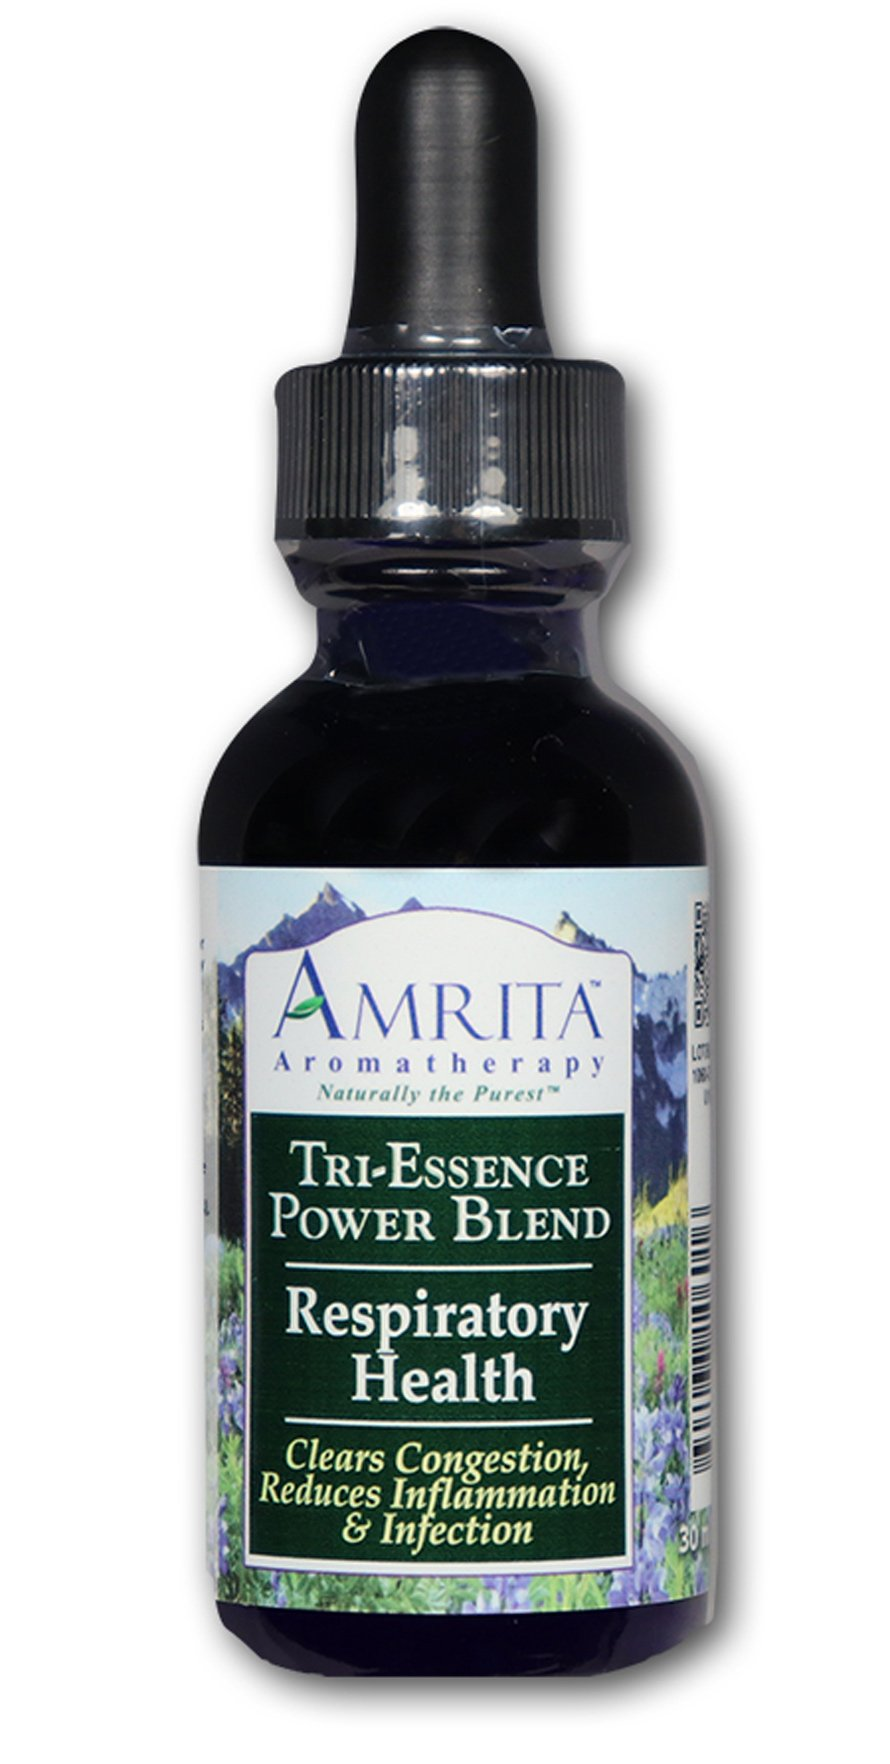 AMRITA Aromatherapy: Respiratory Health Tri-Essence Power Blend; Blended With All Natural Herbal Extracts, Flower Essences & Essential Oils of Inula, Niaouli, Pine Sylvestre & Red Myrtle - SIZE: 240ML by AMRITA Aromatherapy